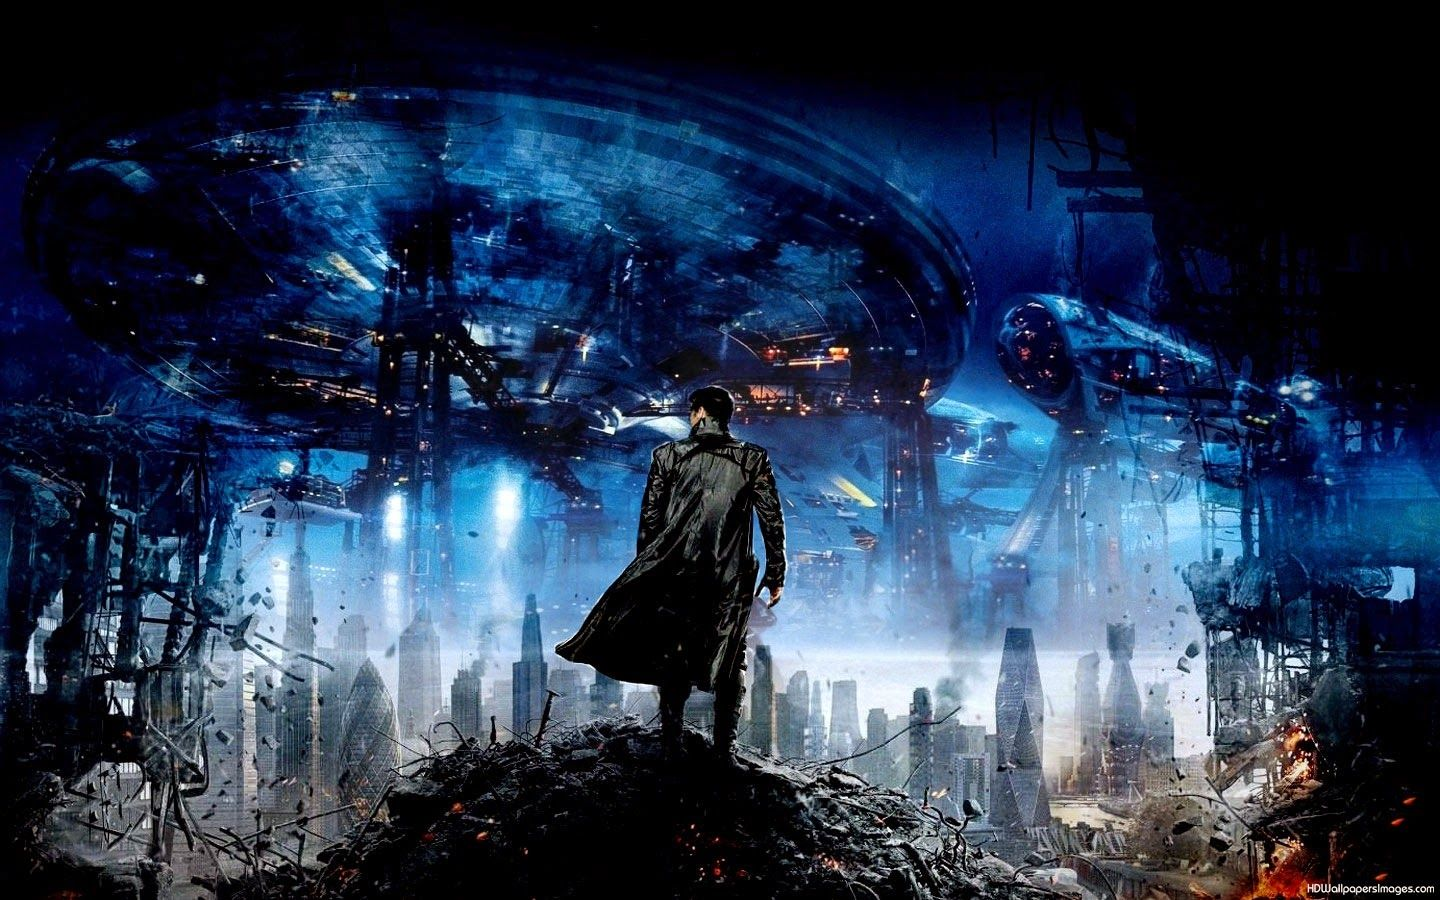 Star Trek Into Darkness Backgrounds Star Trek Into Darkness Wallpaper Khan 252198 Hd Wallpaper Backgrounds Download